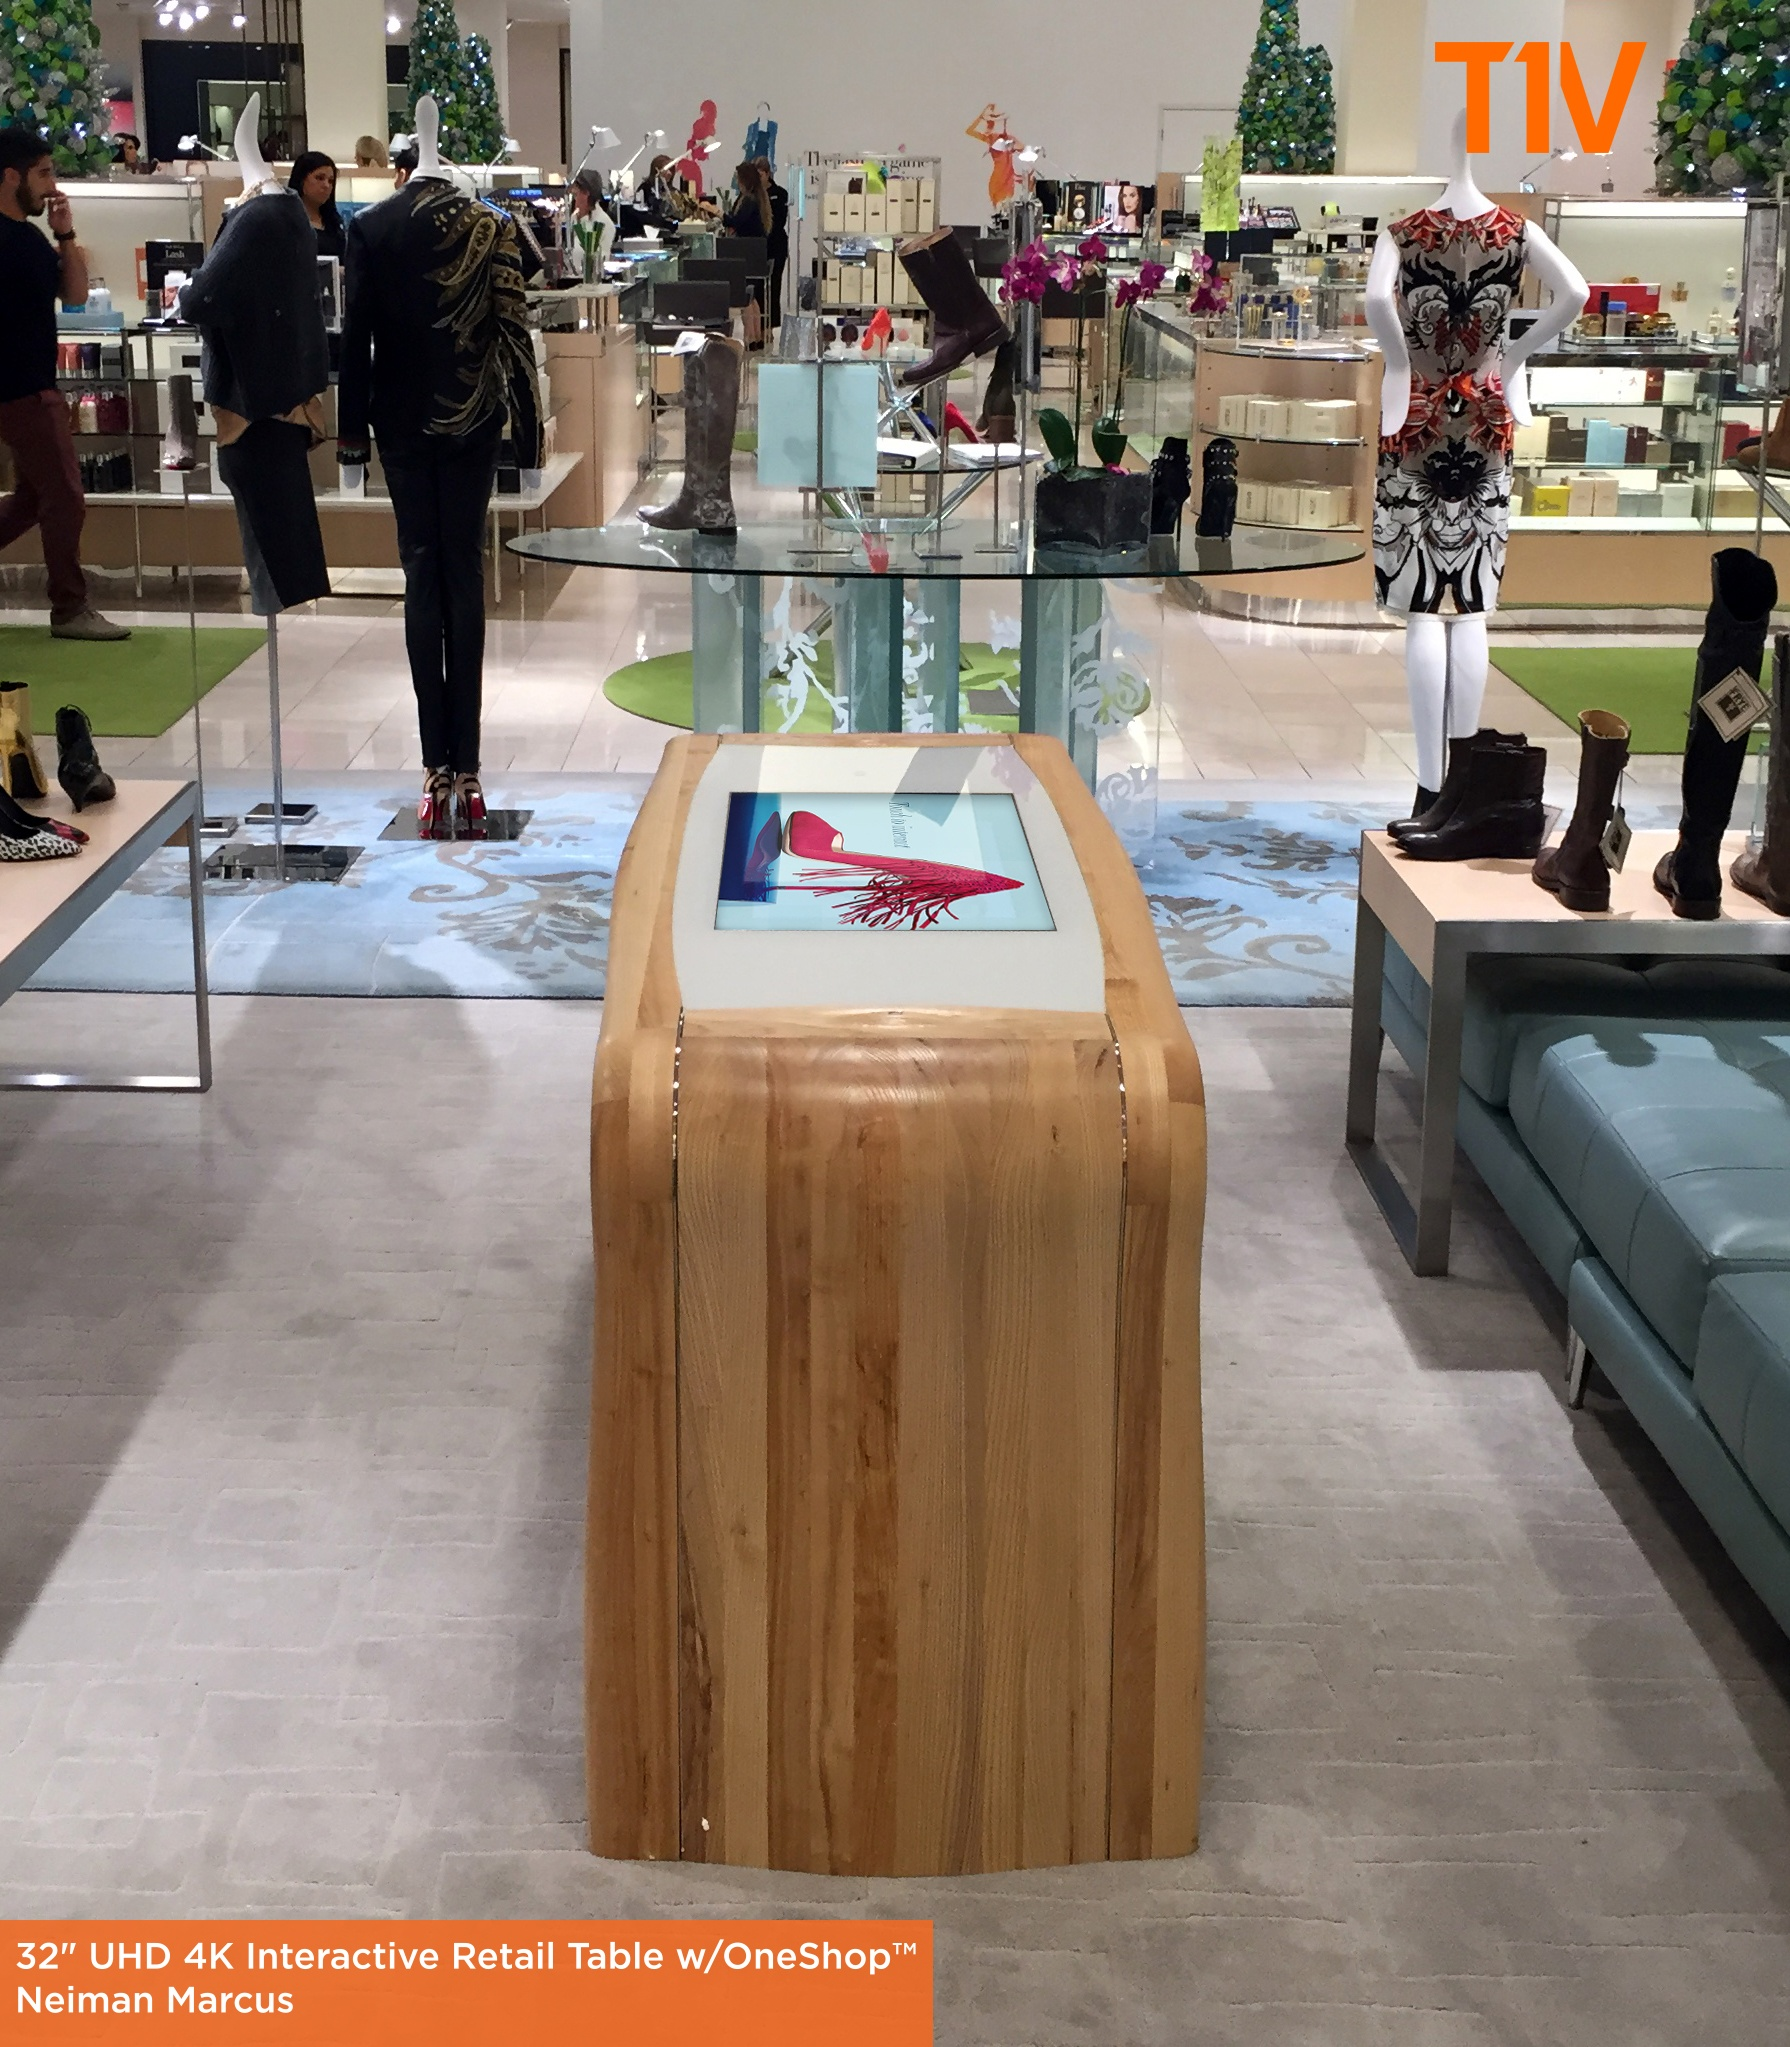 T1V_Interactive_Retail_Table_NeimanMarcus.jpg